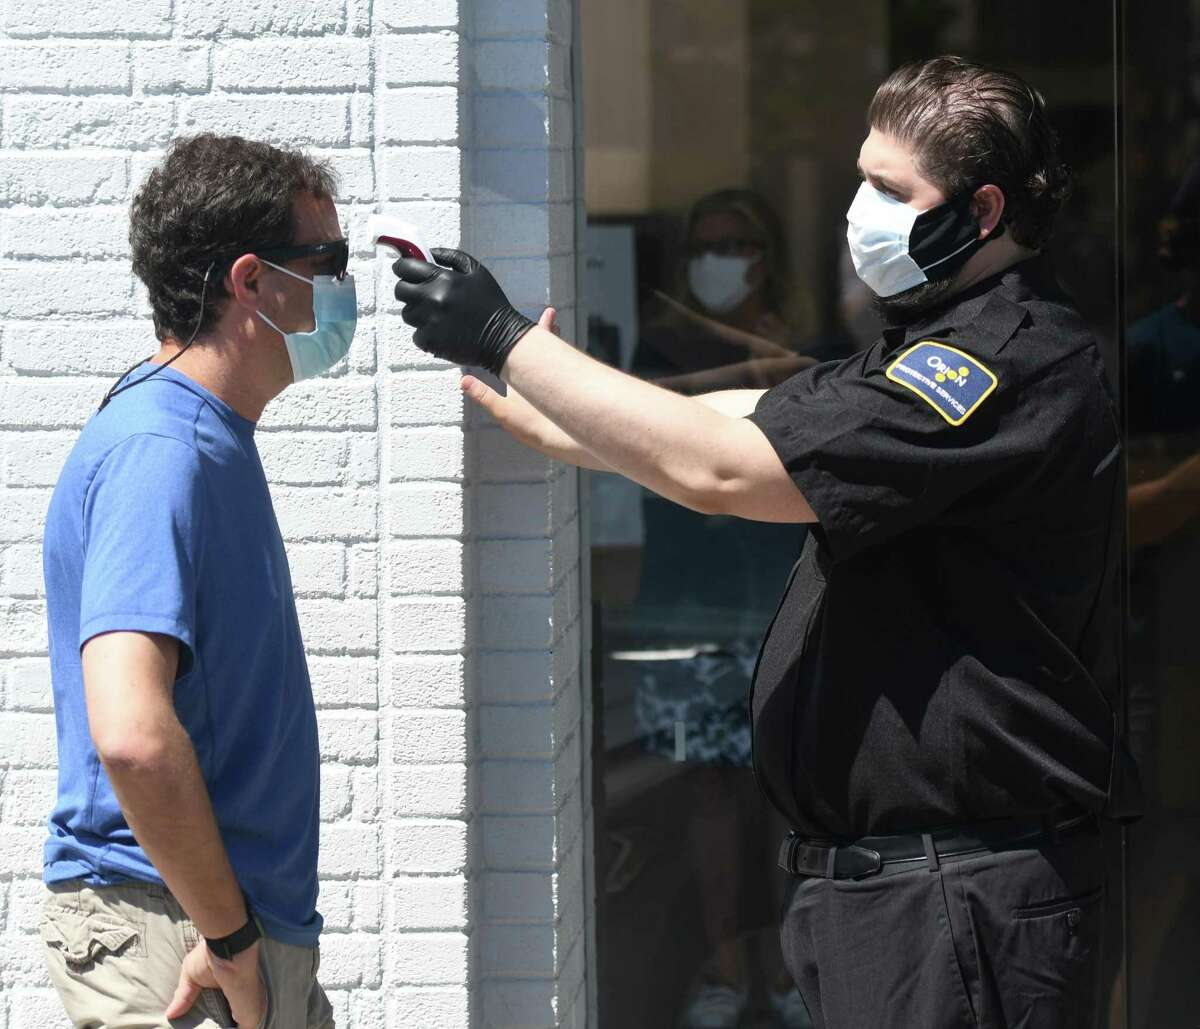 A customer gets his temperature taken by security before entering the Apple store on the day of its reopening in Greenwich, Conn. Wednesday, June 17, 2020. The Apple Store reopened with other businesses of the second phase of reopenings in Connecticut, including nail salons, gyms, limited indoor dining, pools, tattoo parlors and more.